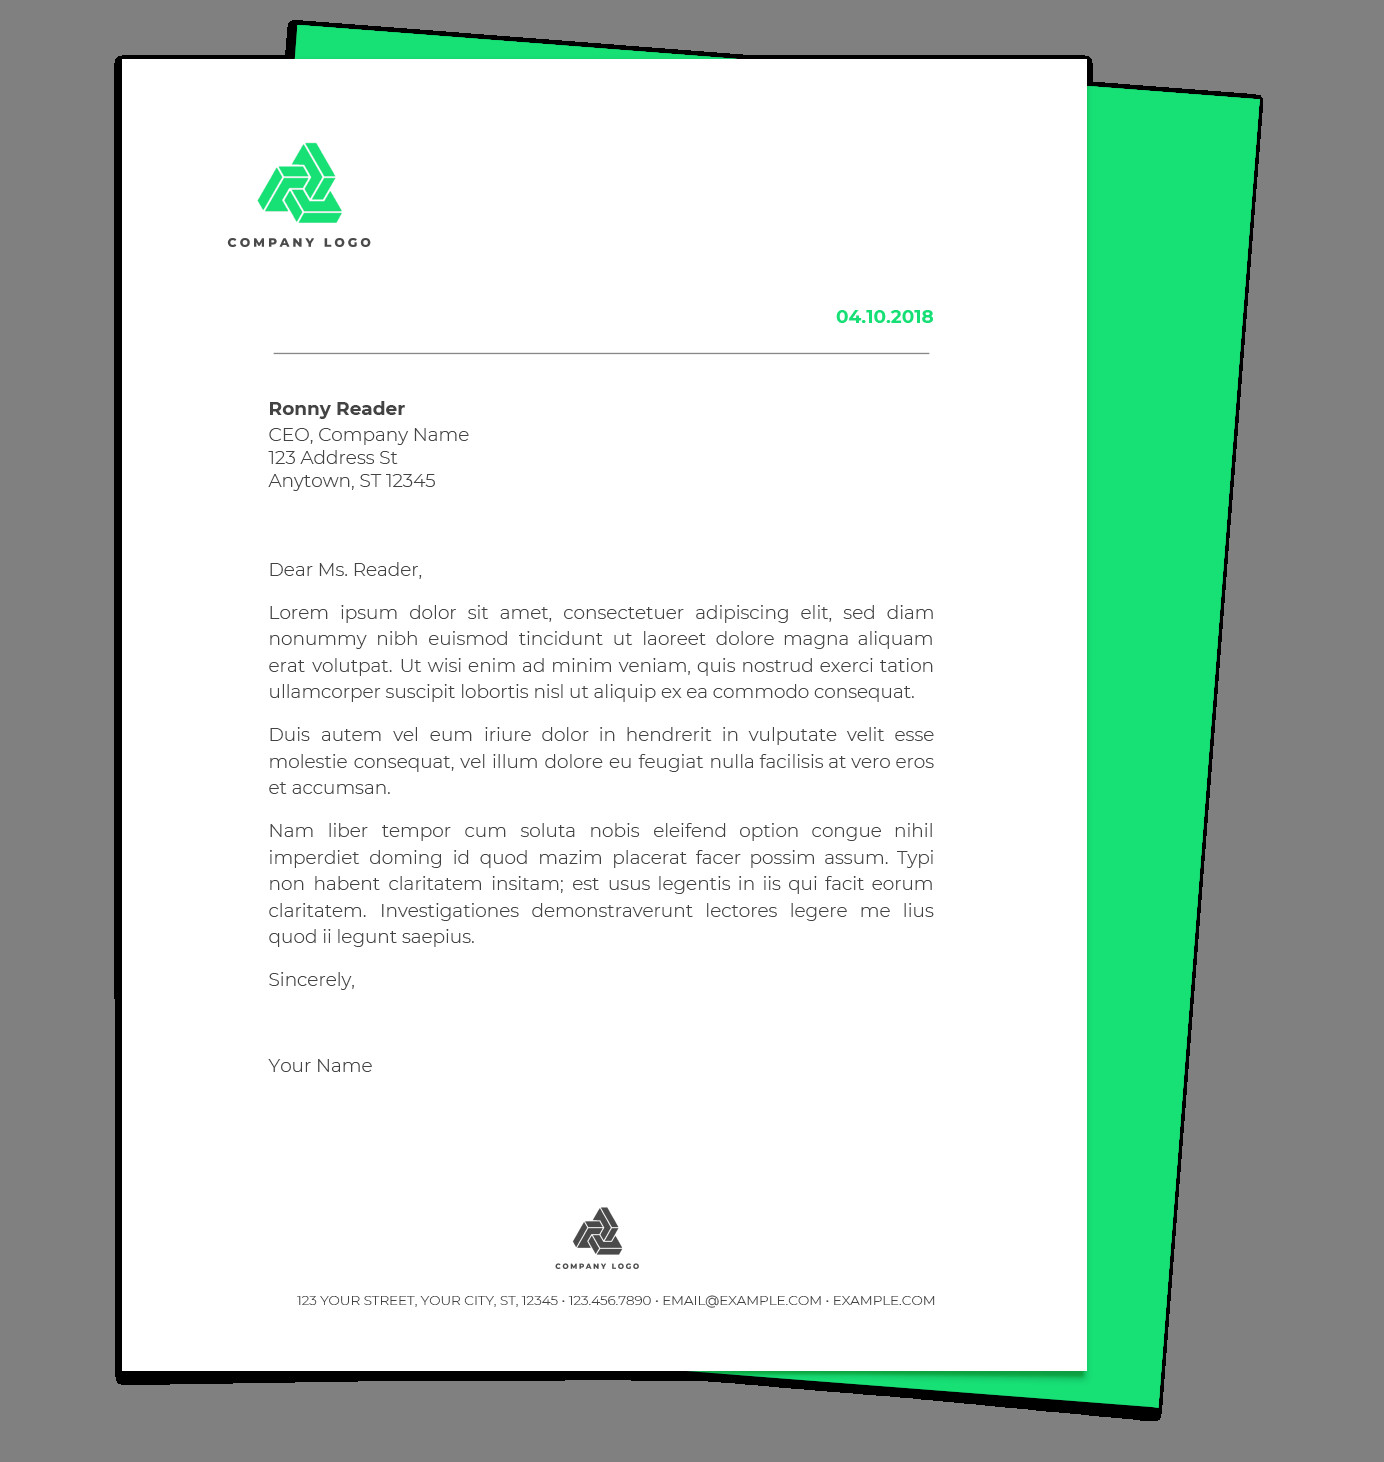 Google Docs Letterhead Template Free Letterhead Templates for Google Docs and Word